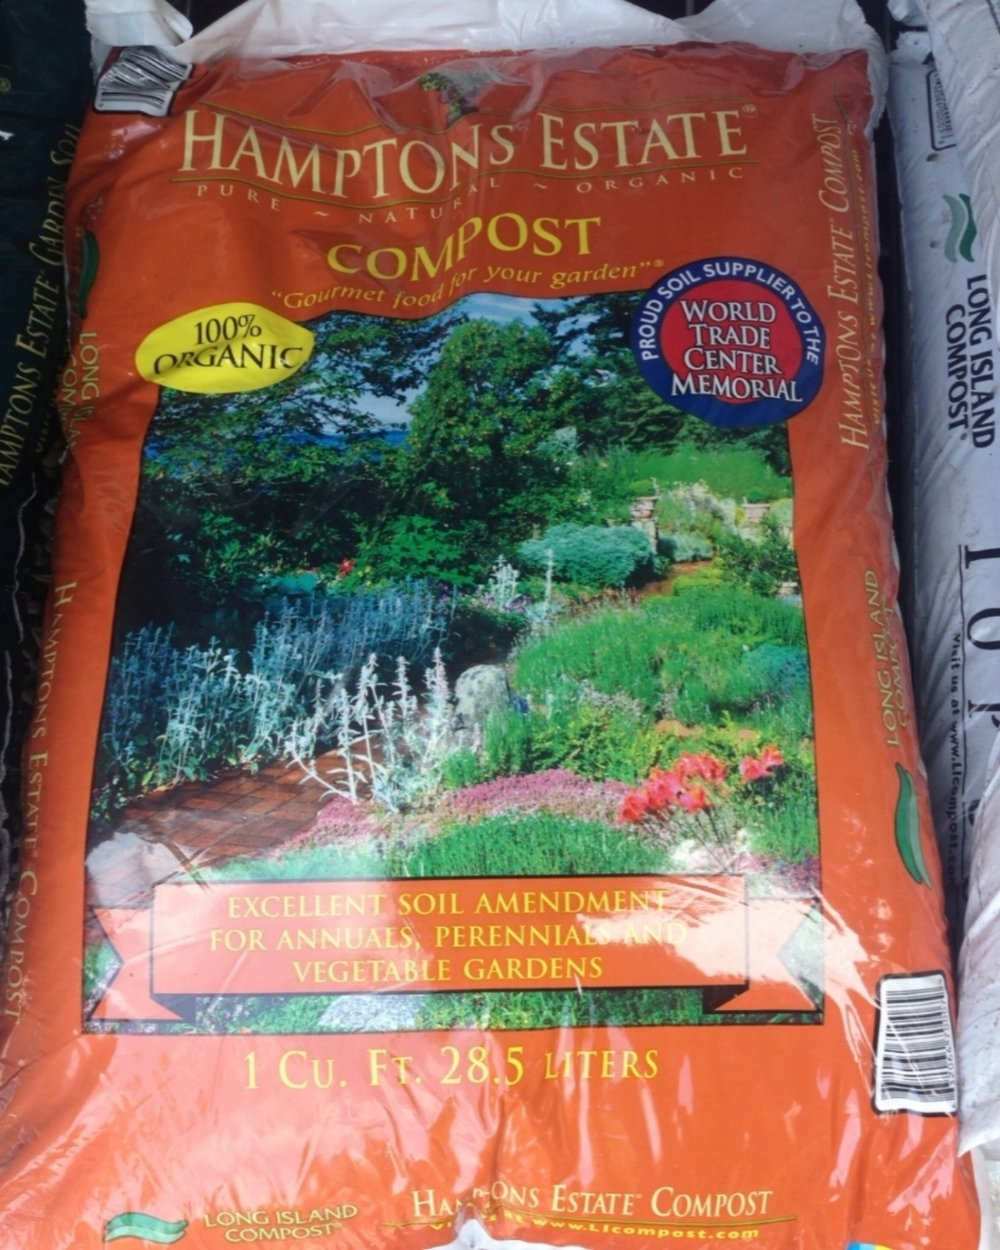 Hampton Estate Compost